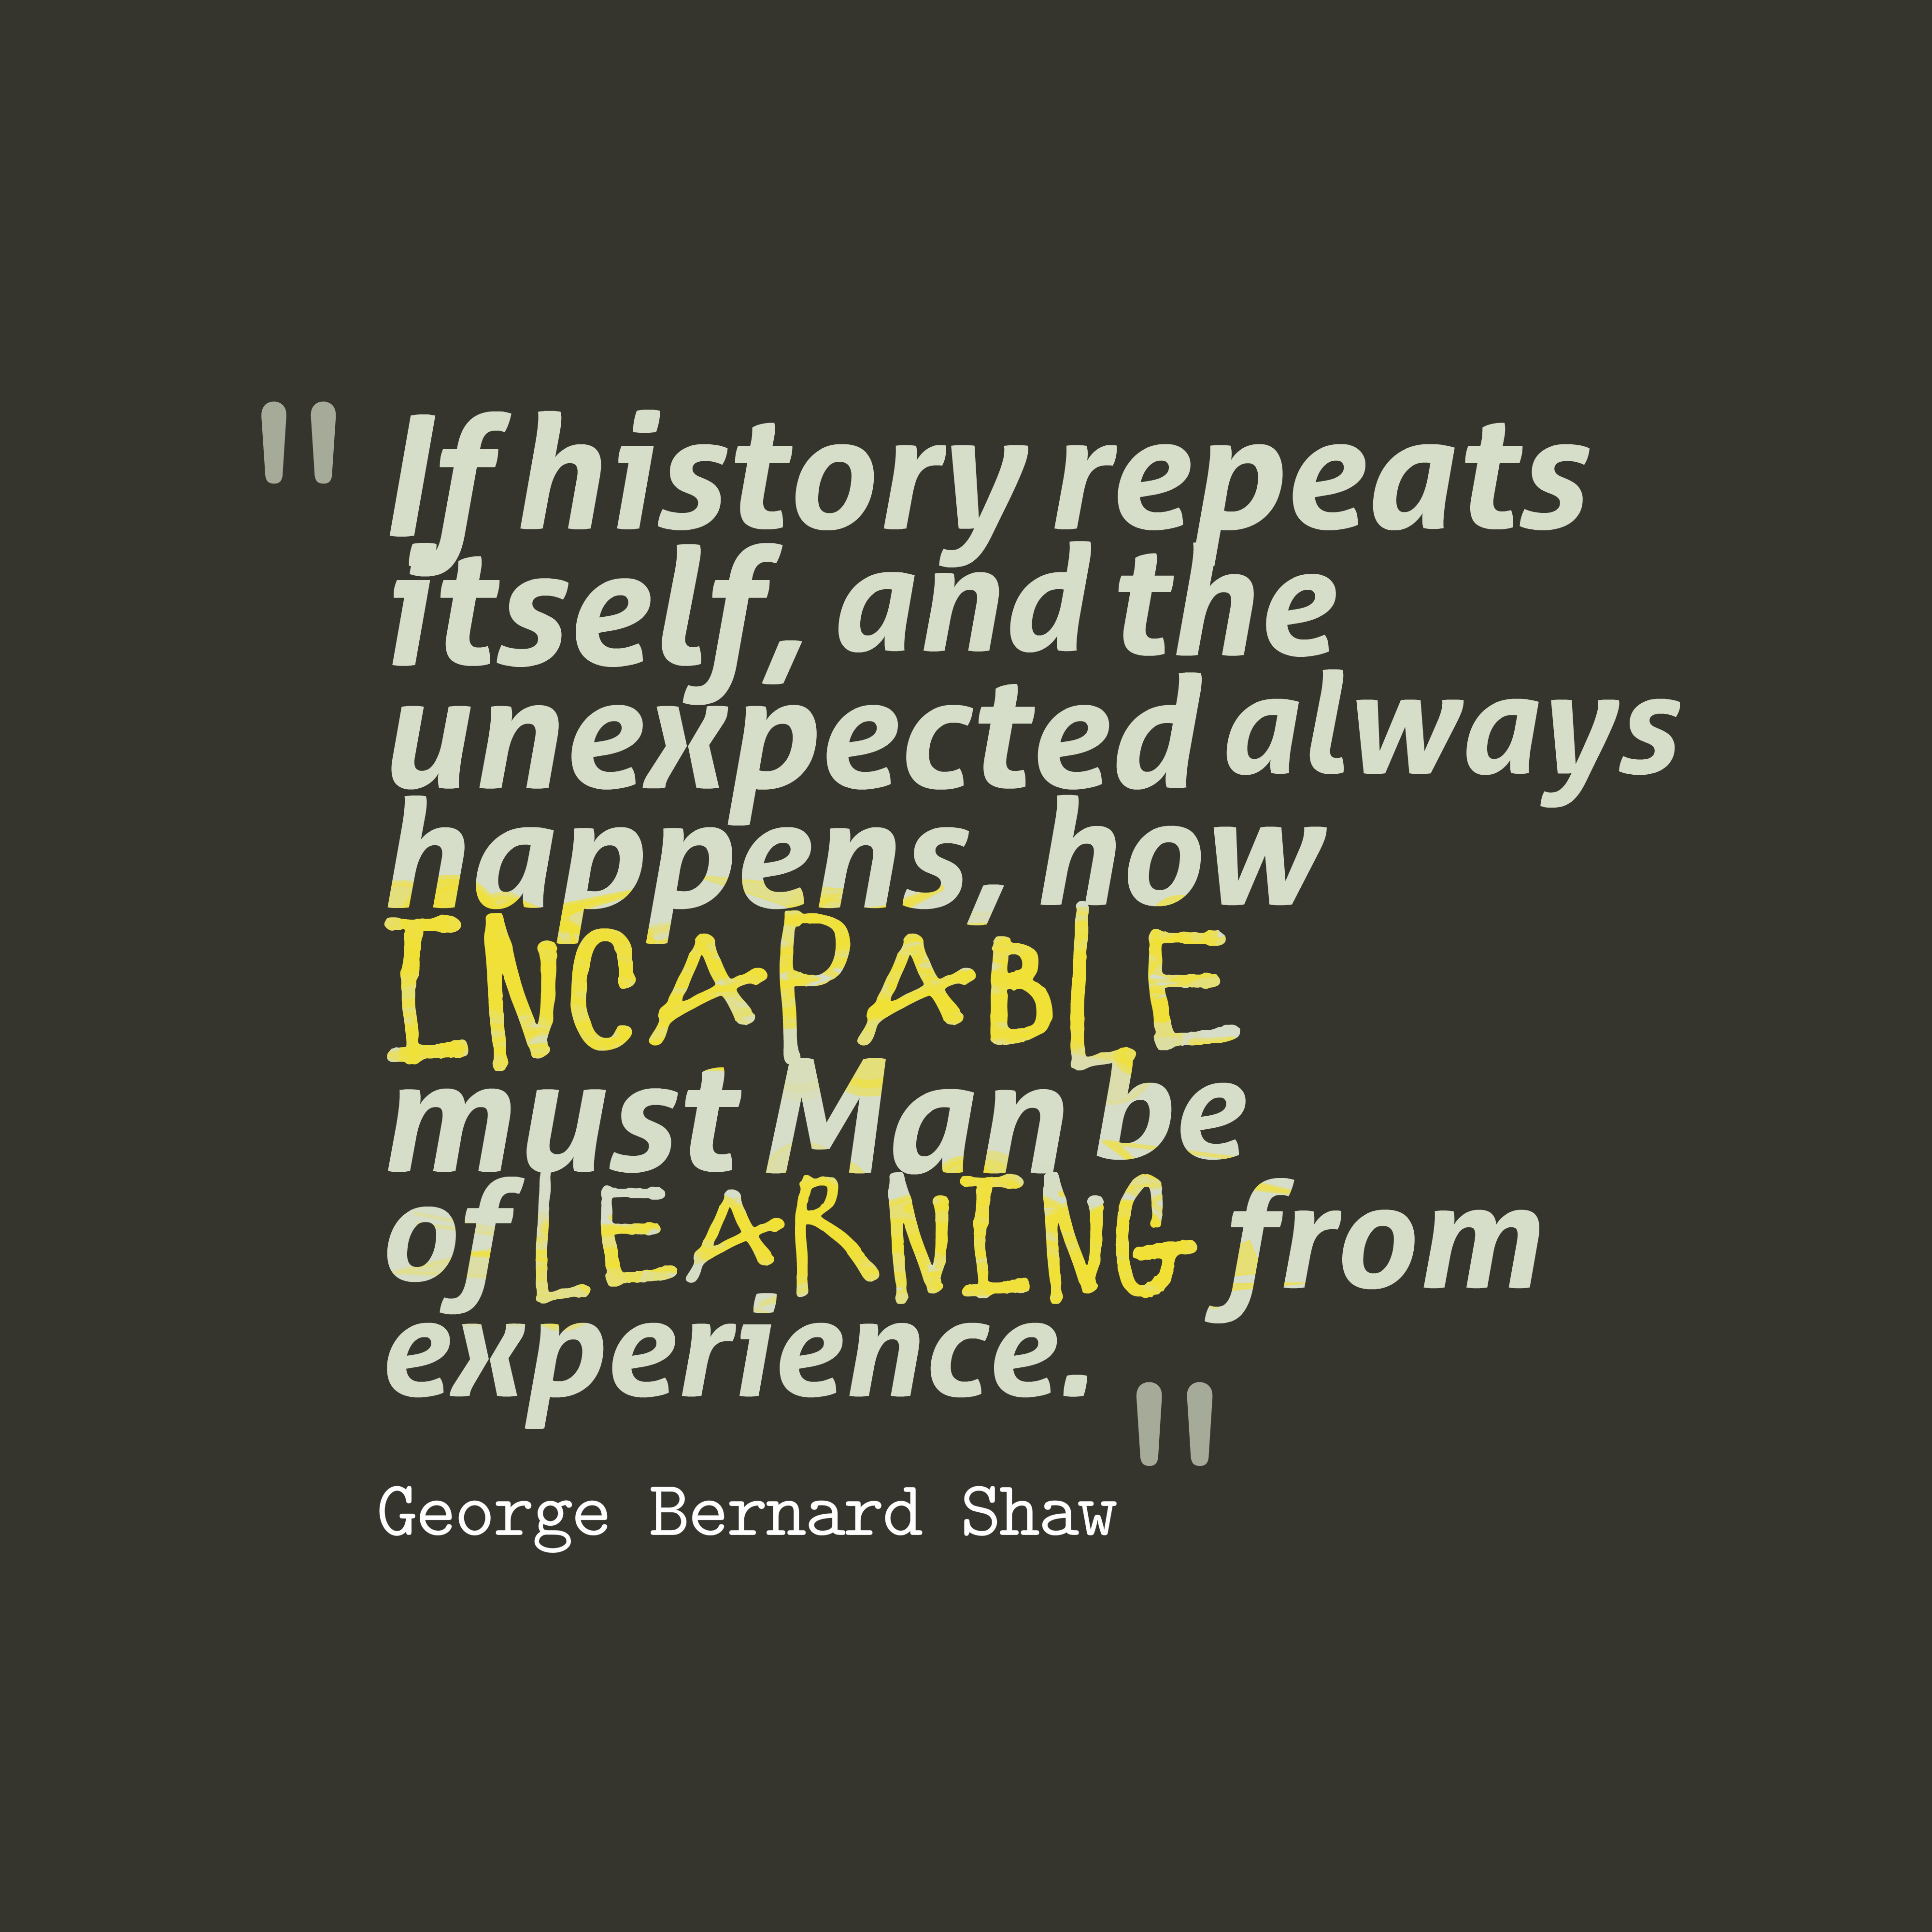 Quotes about How history repeats itself (14 quotes)